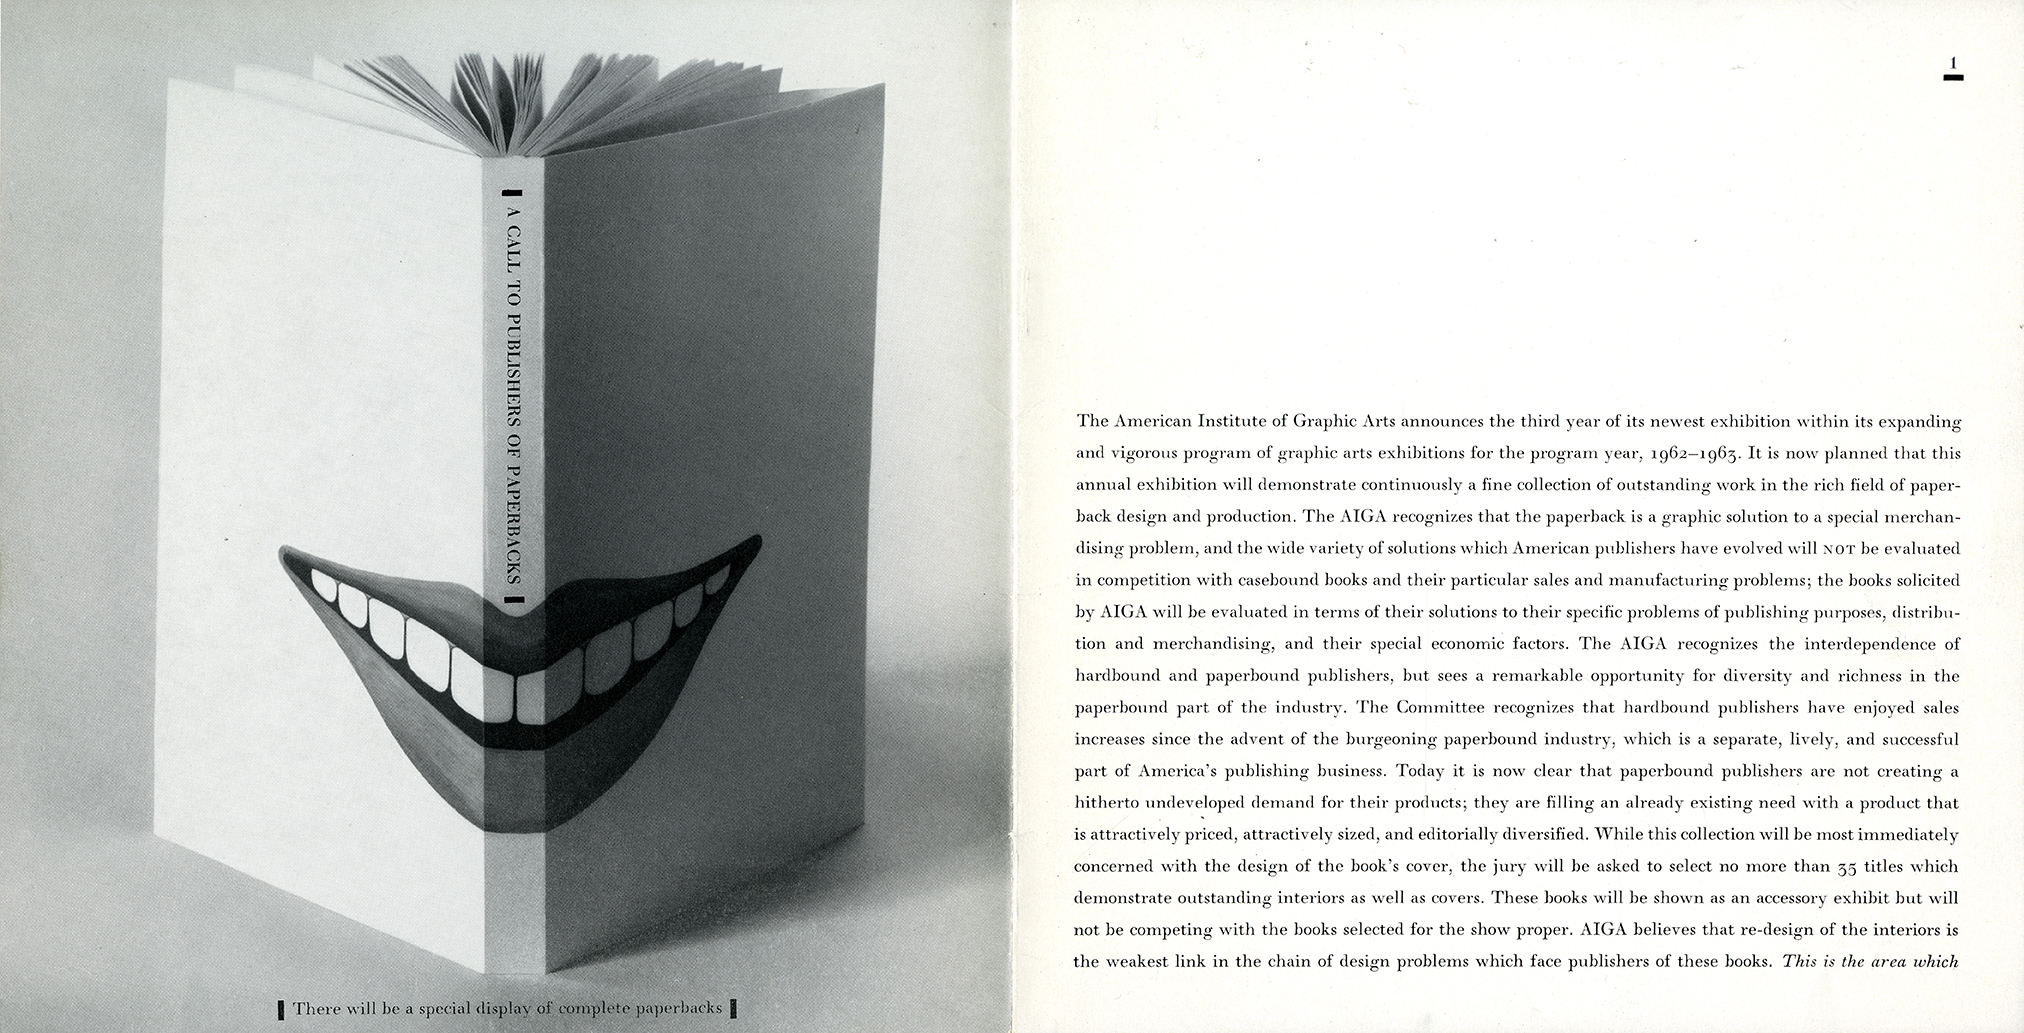 Book cover with open mouth spread across spine